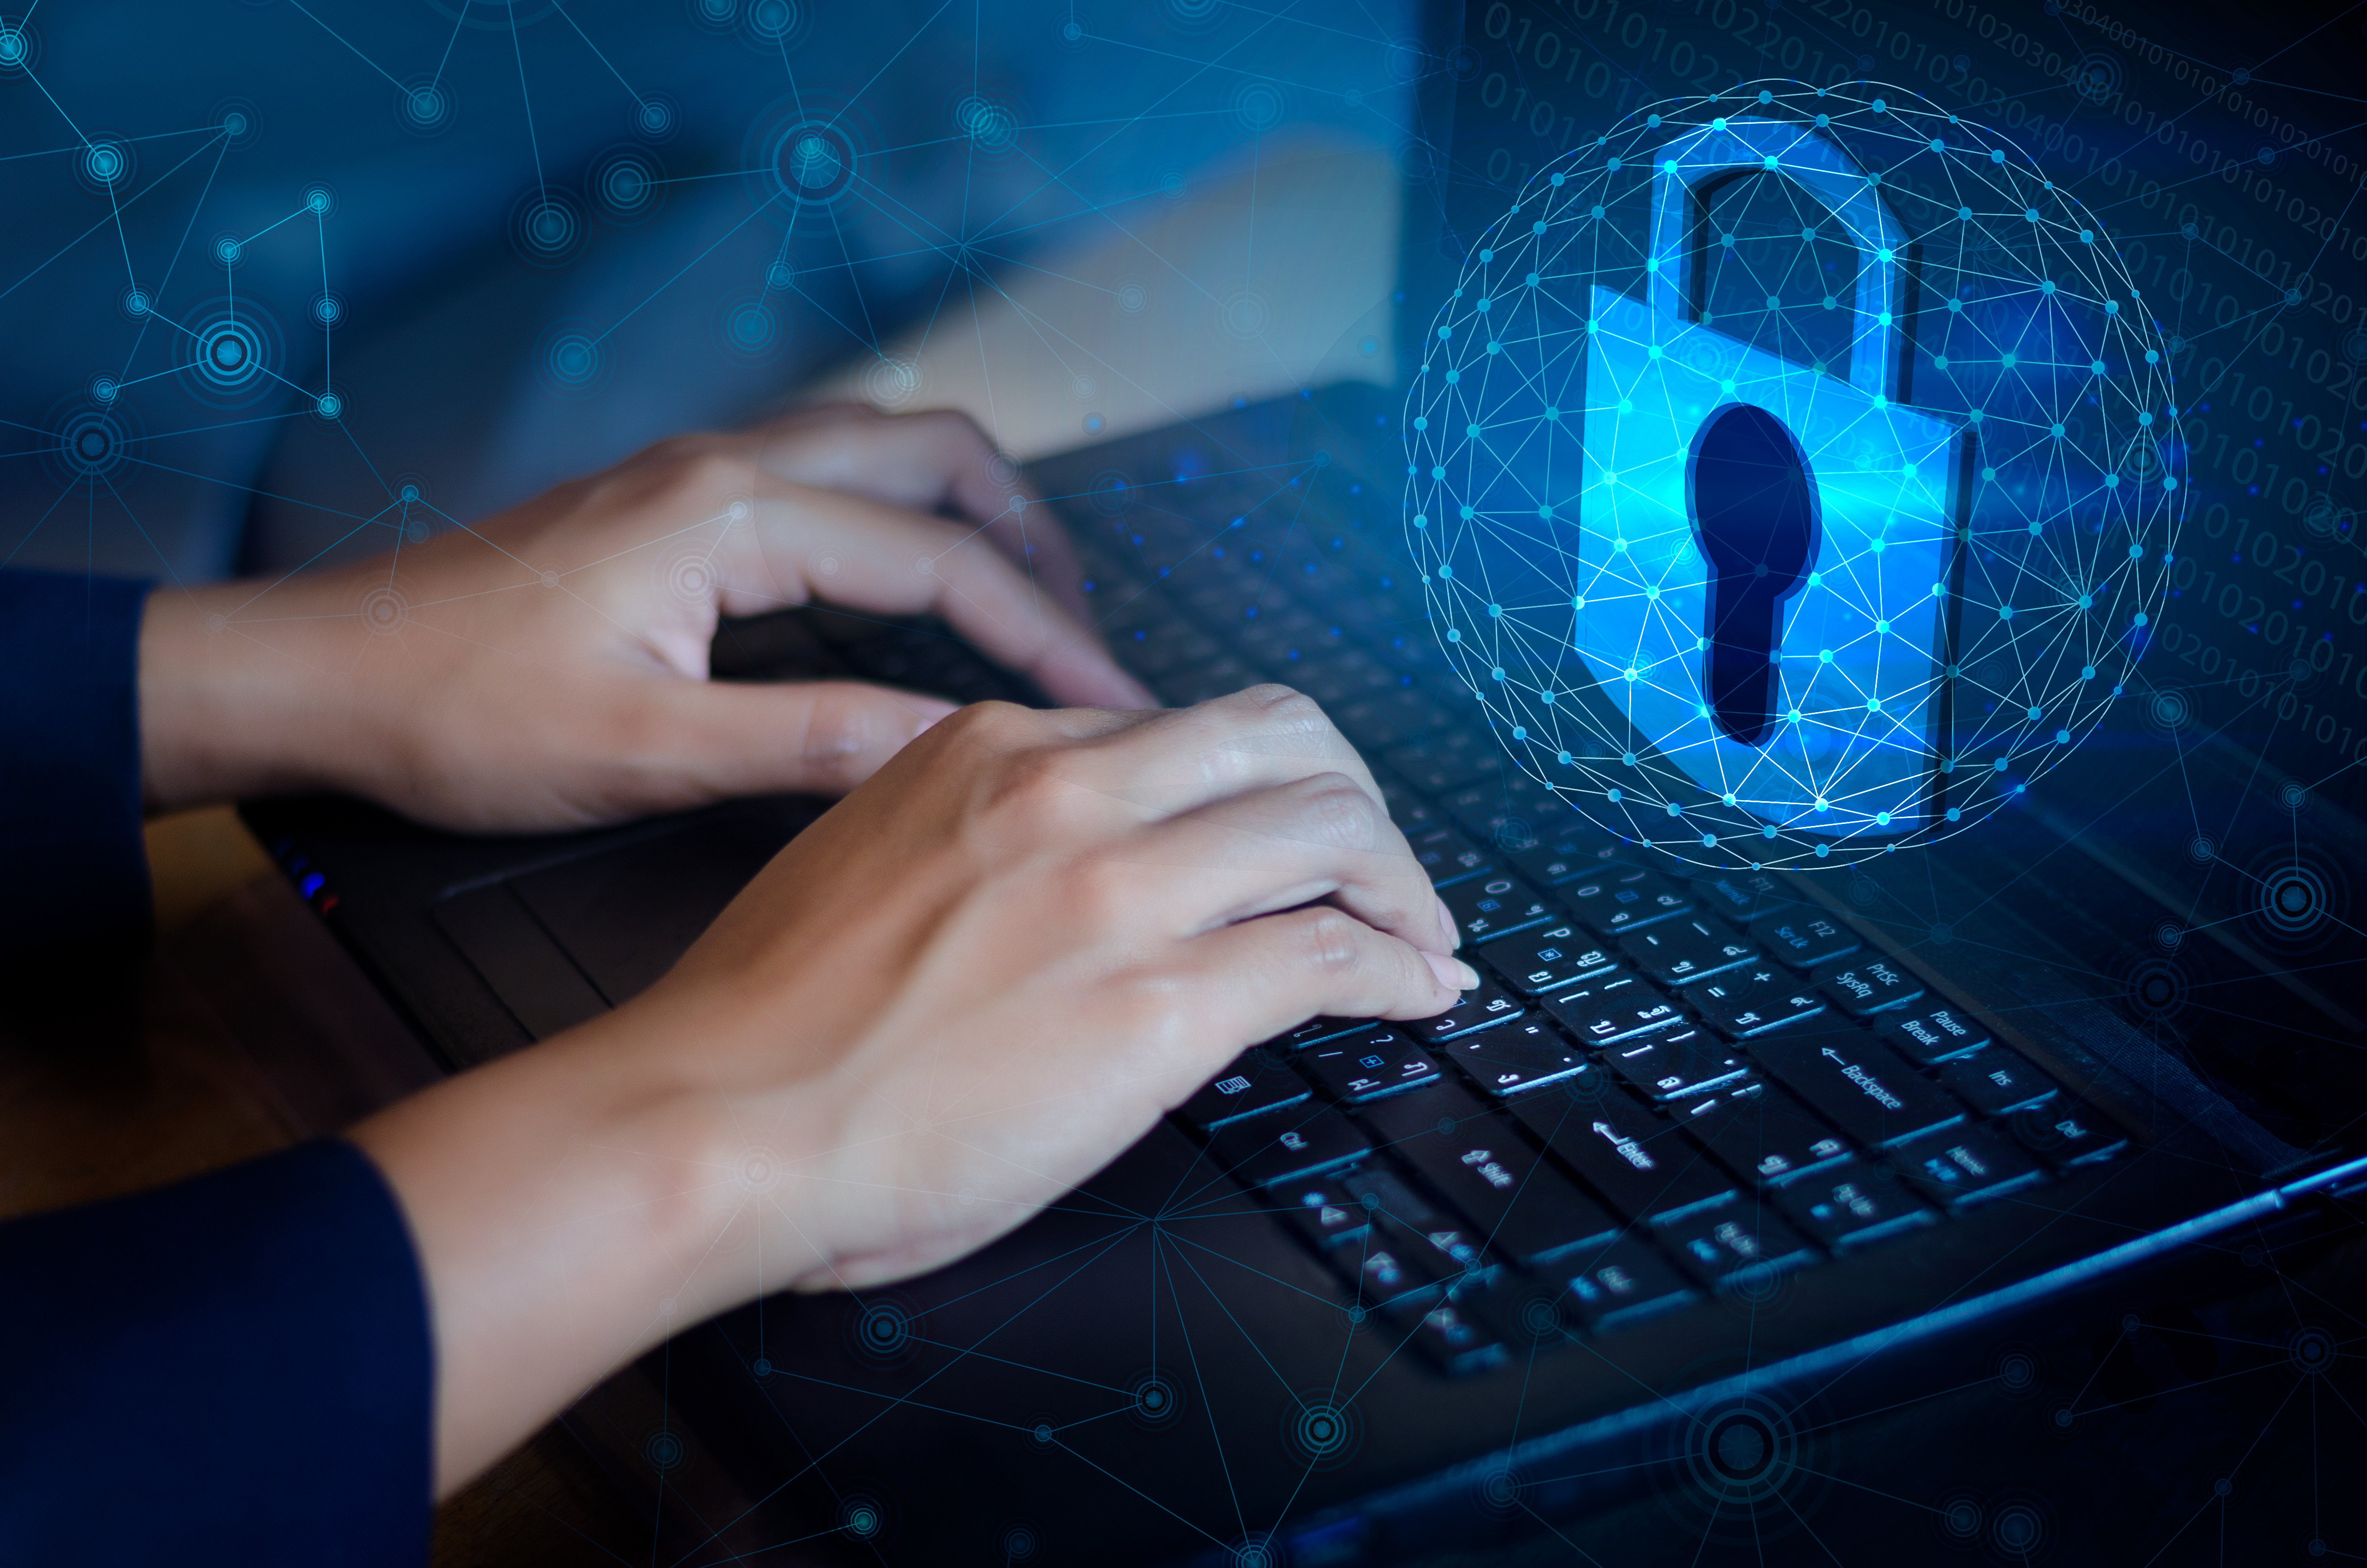 Most businesses' security procedures remain second- or third-generation.